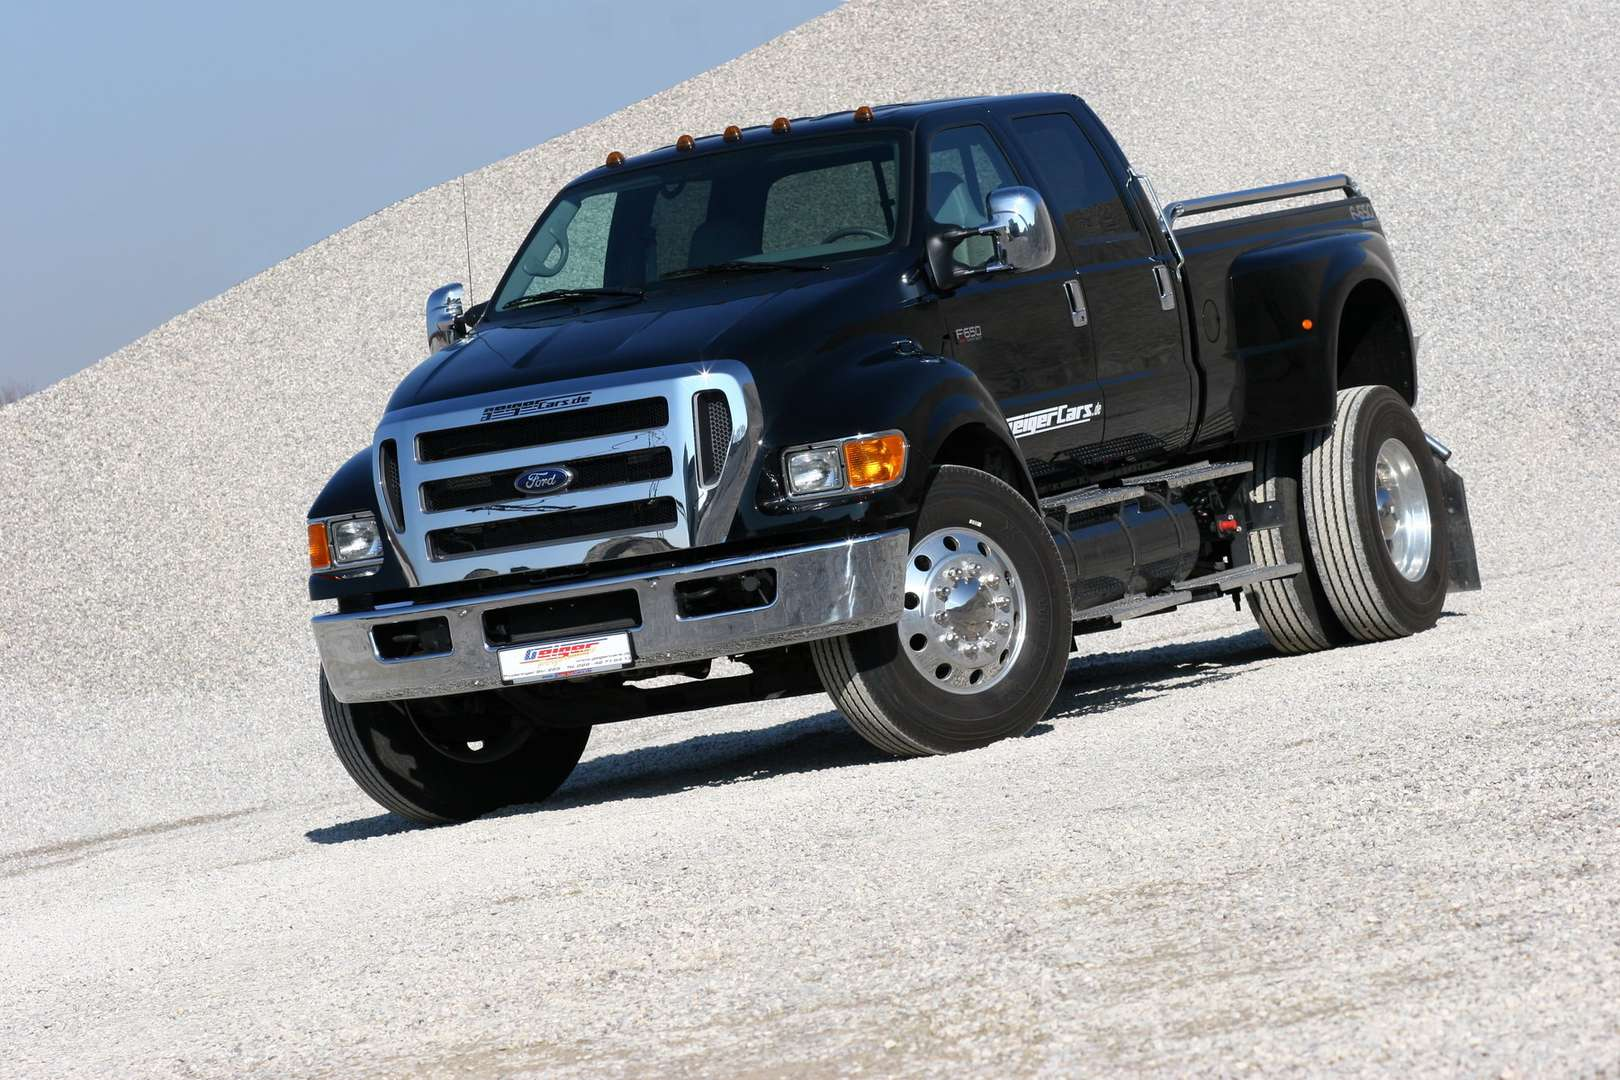 Ford F-750 #9511218